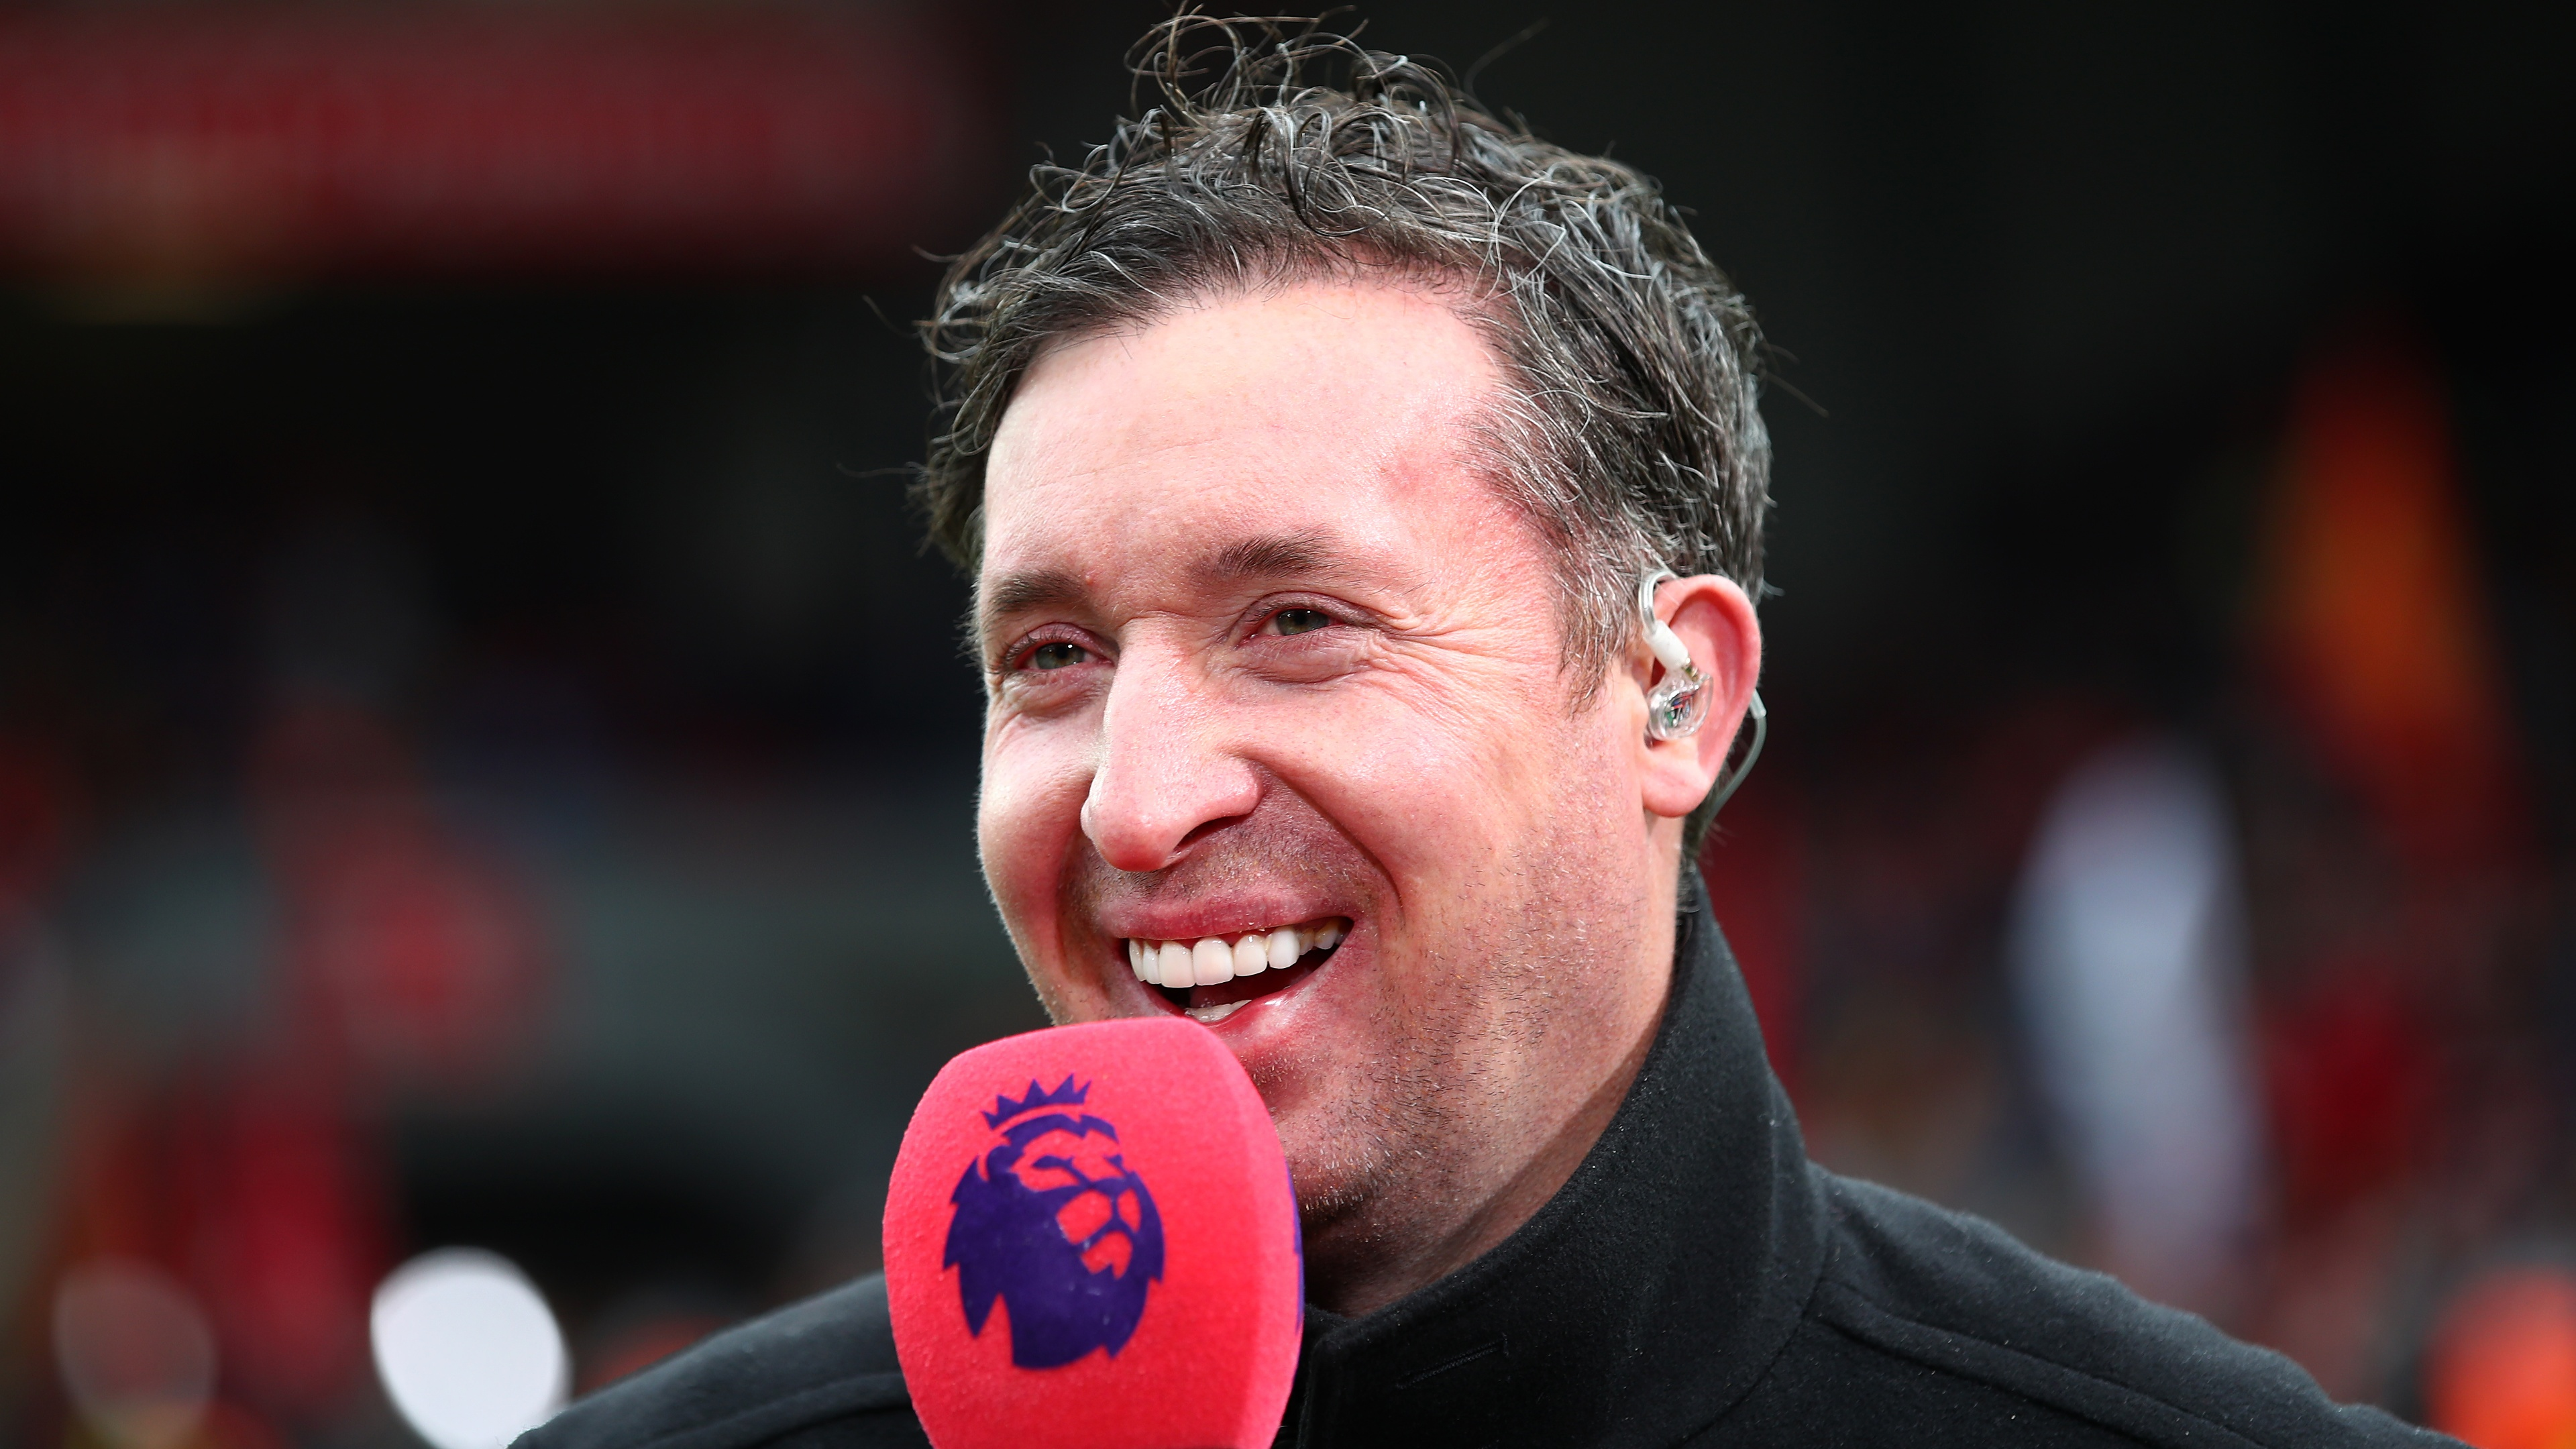 Liverpool legend Robbie Fowler returns to A-League to coach Brisbane Roar